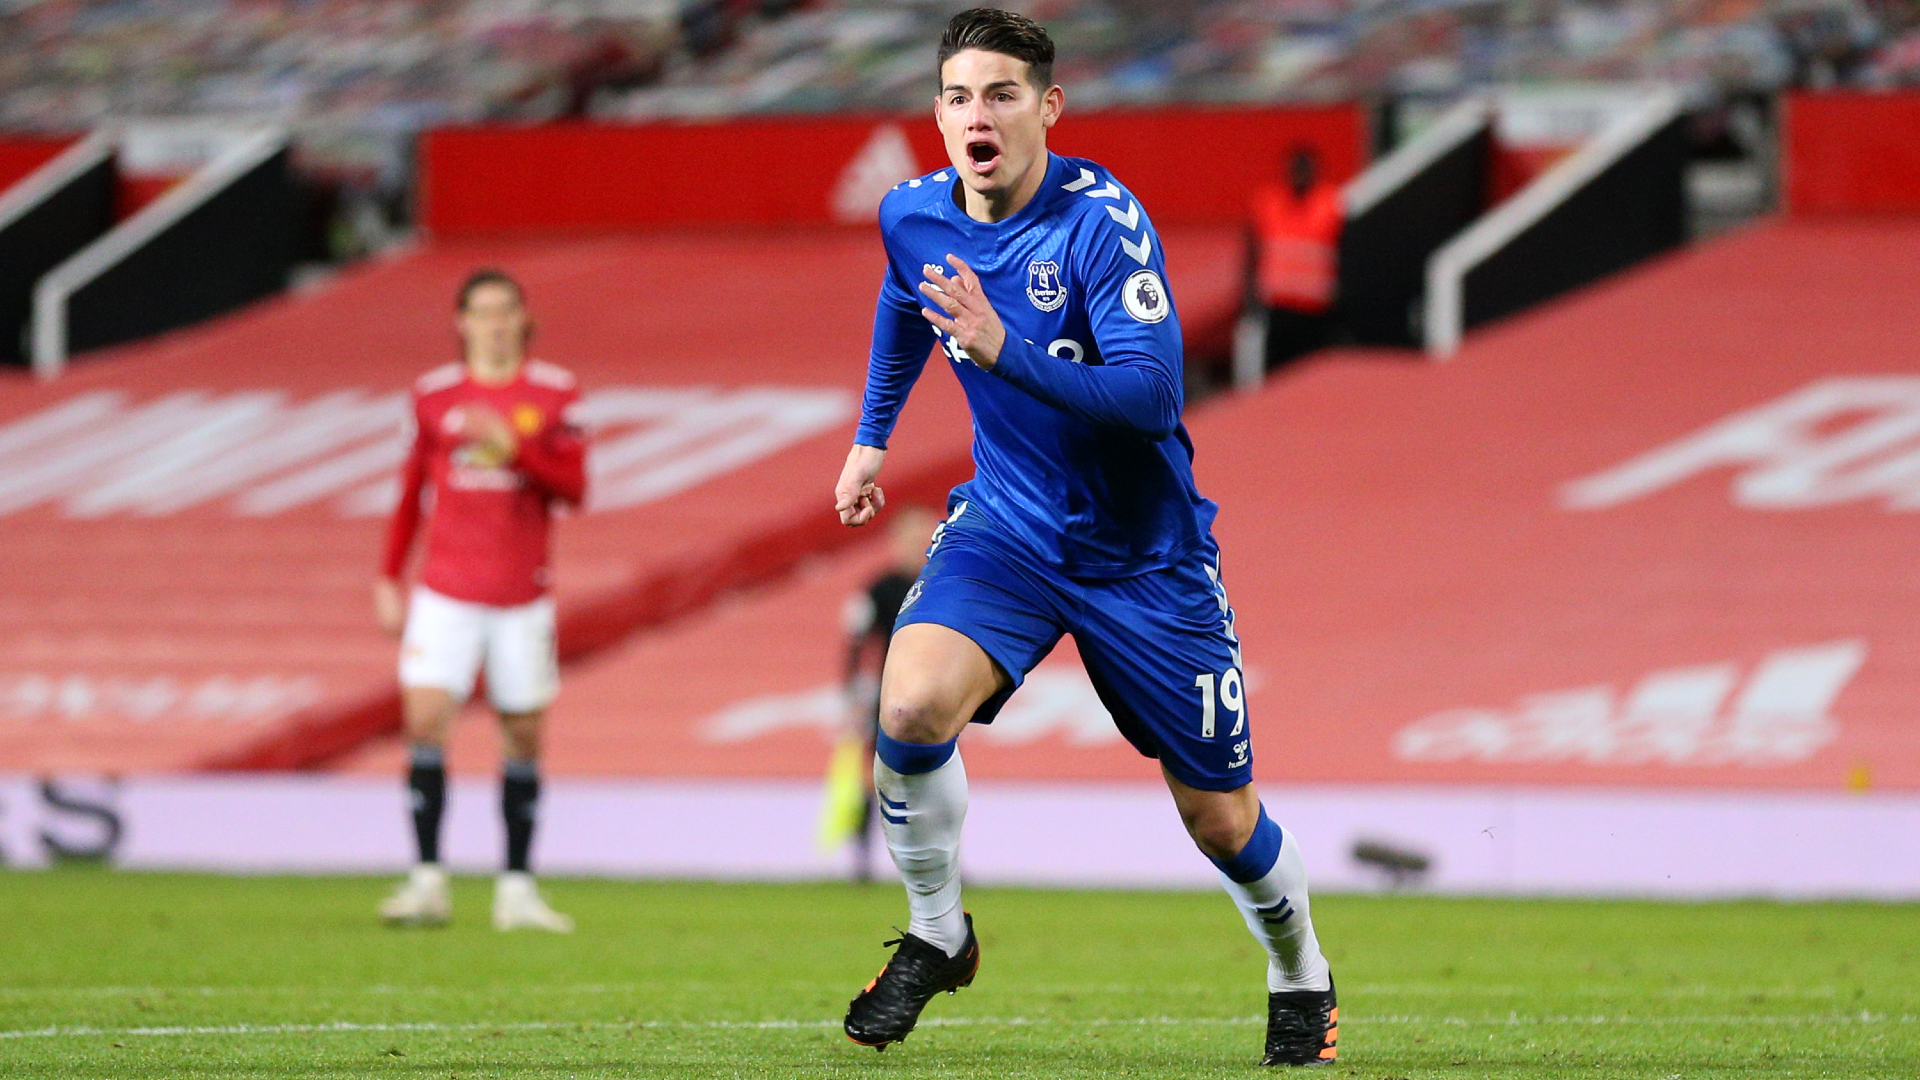 Benitez offers his take on James Rodriguez as exit talk rages around Everton playmaker